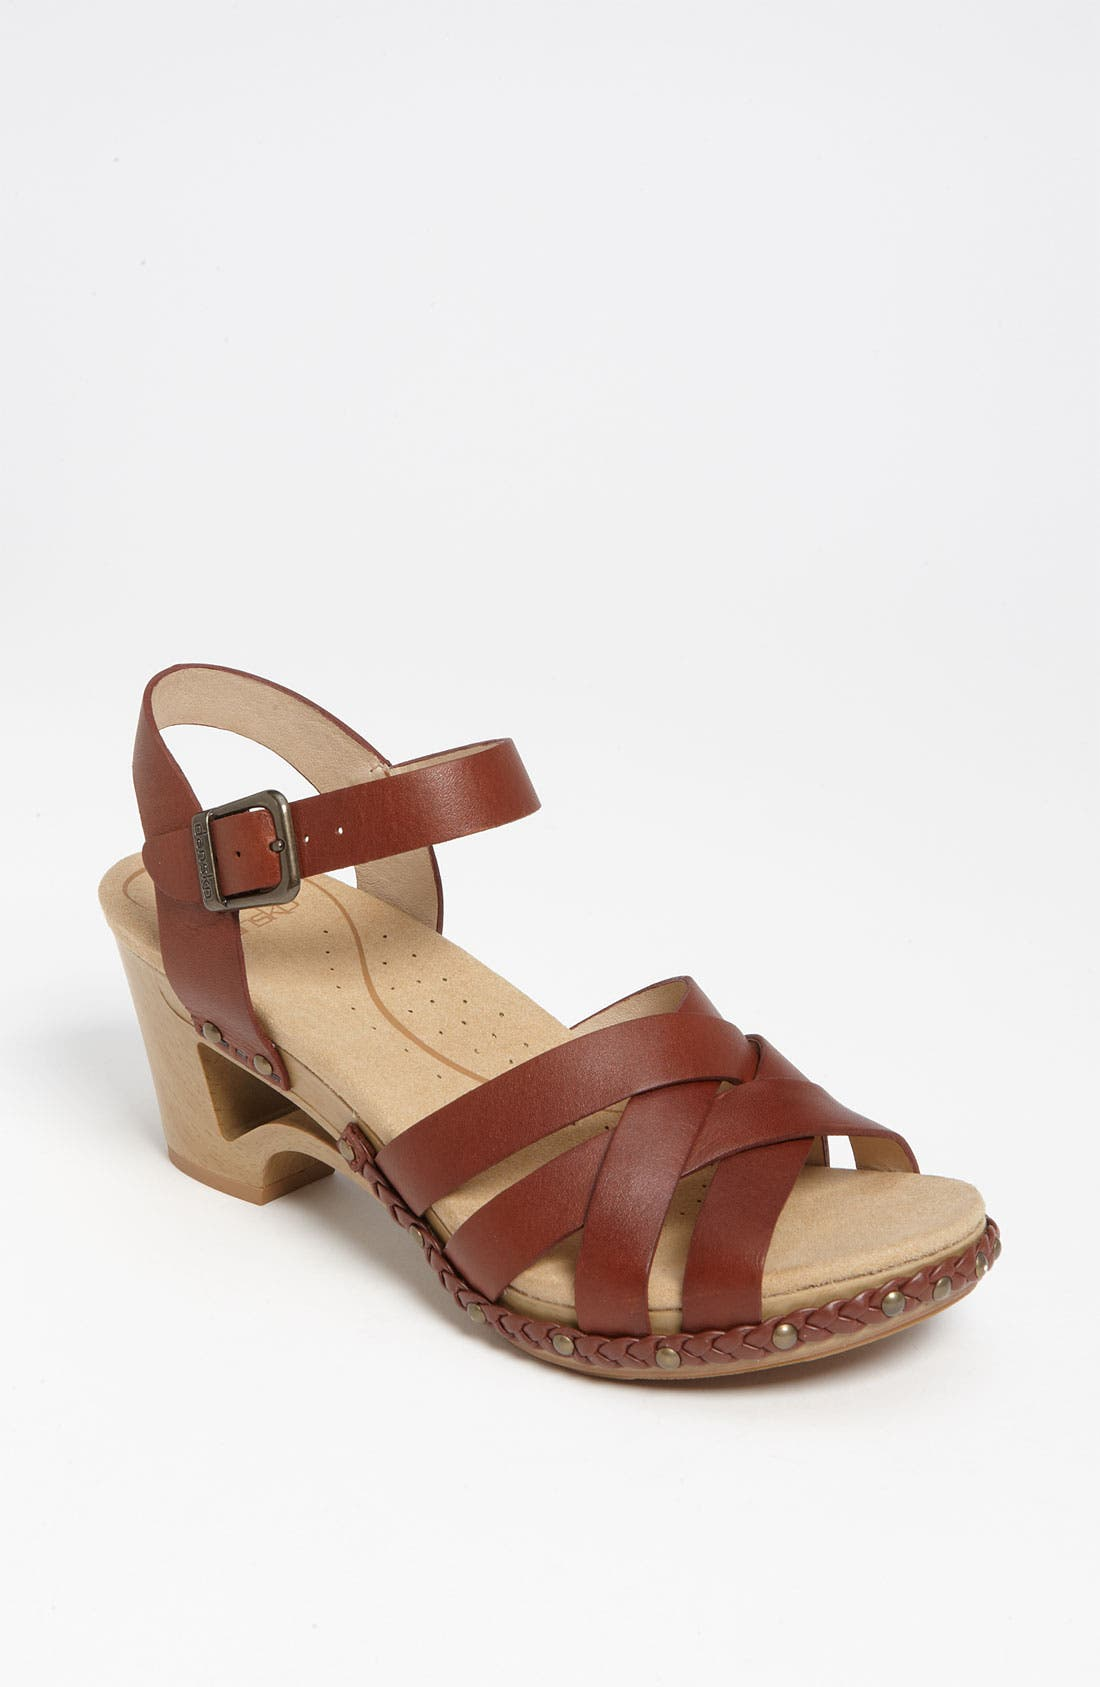 Alternate Image 1 Selected - Dansko 'Tru Clog' Sandal